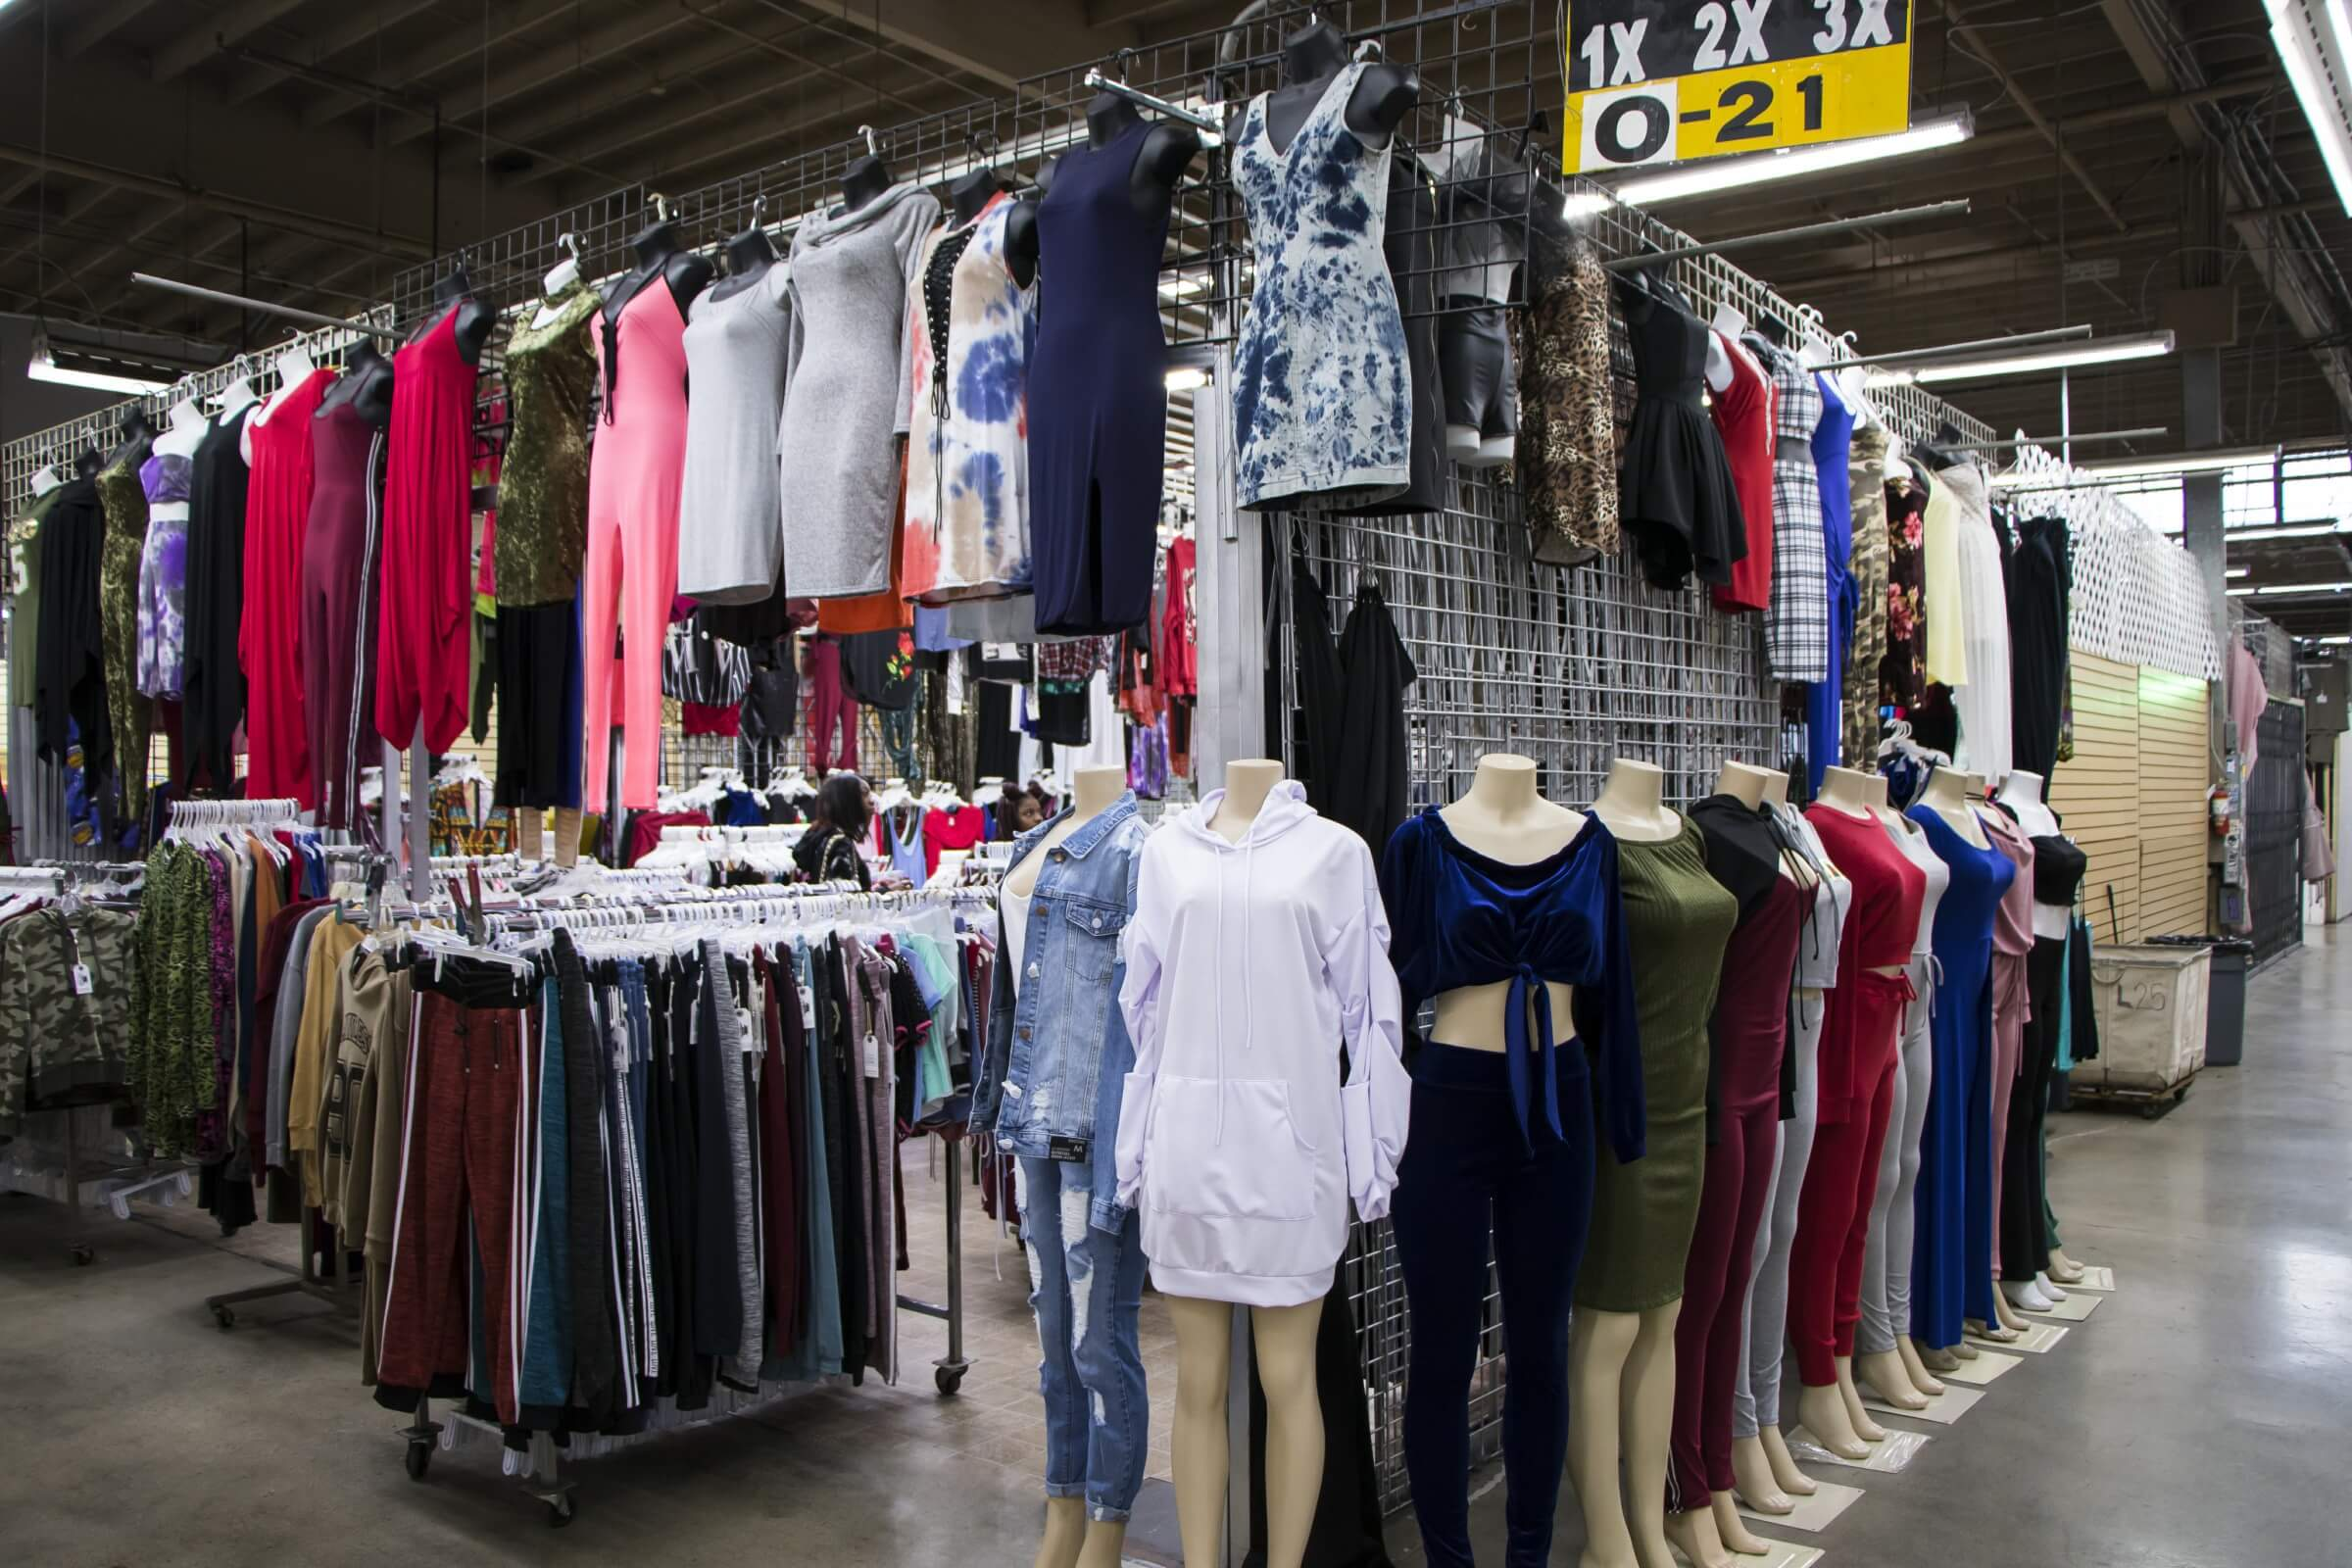 Ladies Clothing Stores in Los Angeles - Slauson Super Mall